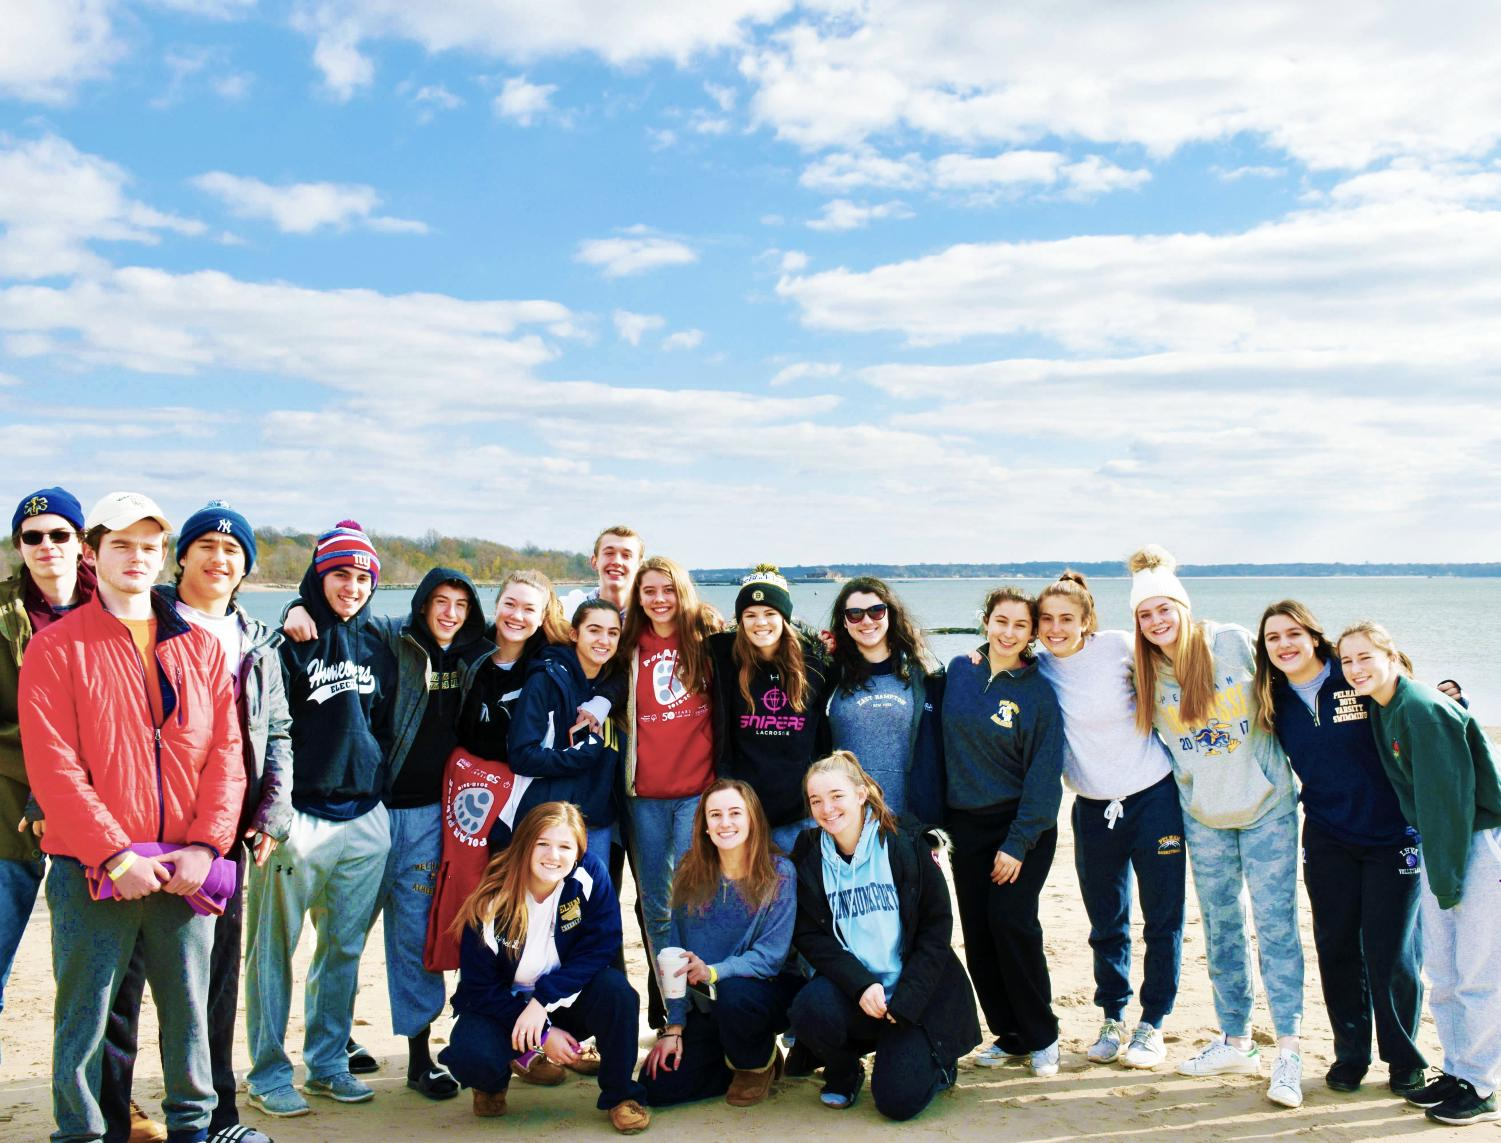 PMHS students FREEZE for a photo while getting ready to dive into the Long Island Sound to raise money for Special Olympics.